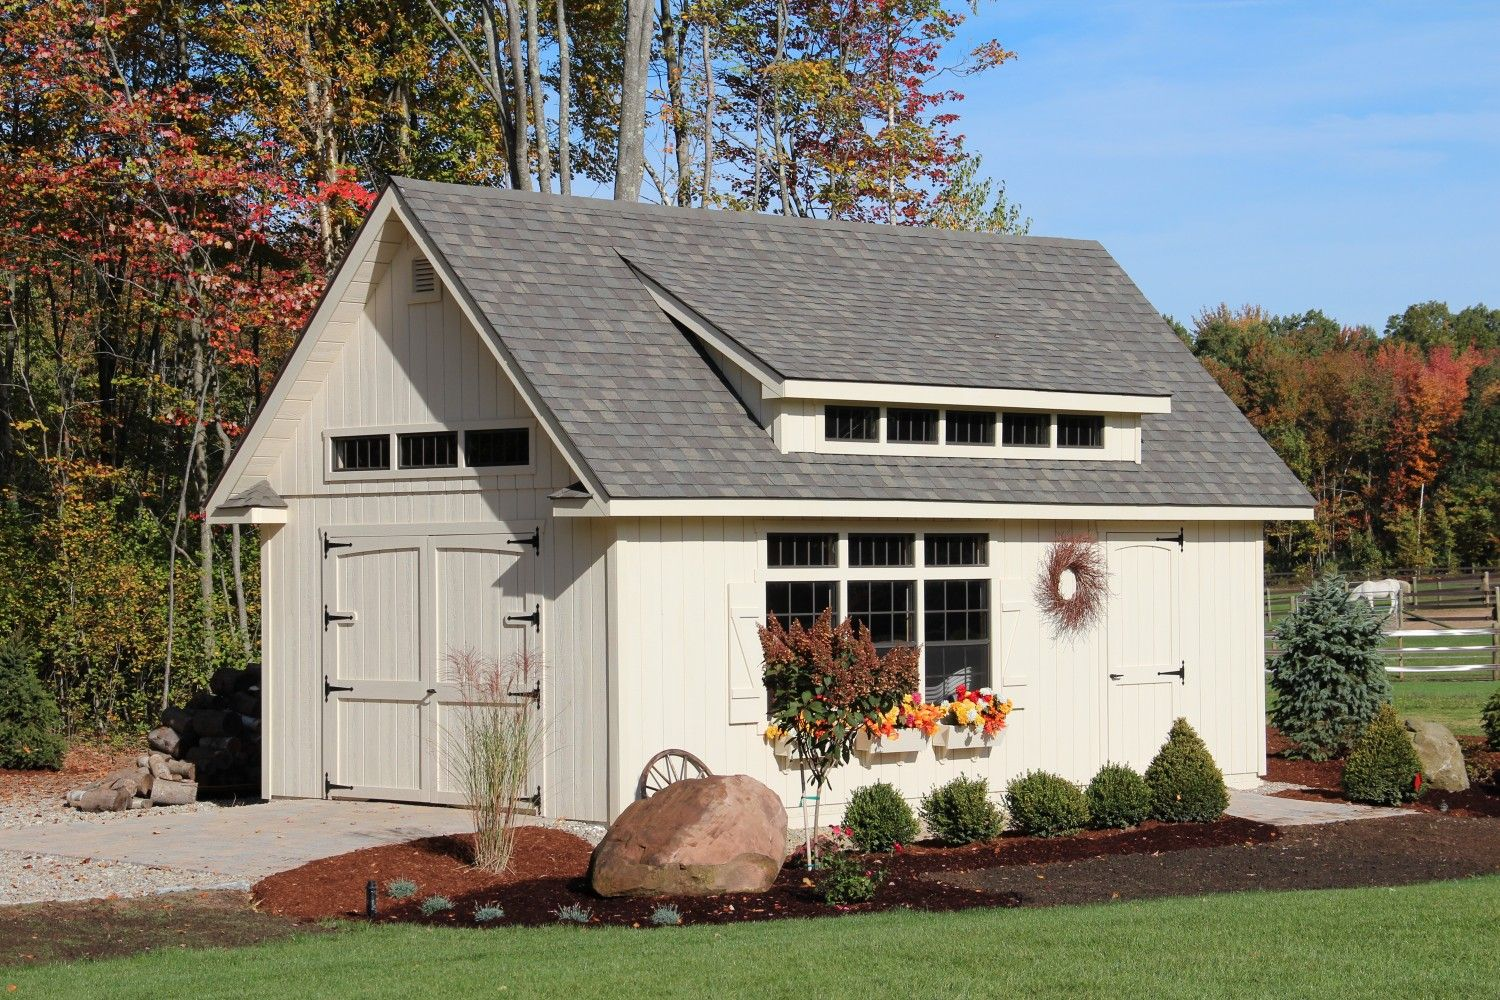 Grand Victorian: Sheds, Storage Buildings, Garages: The Barn Yard &  Great Country Garages | Garage house plans, Building a shed, Shed plans